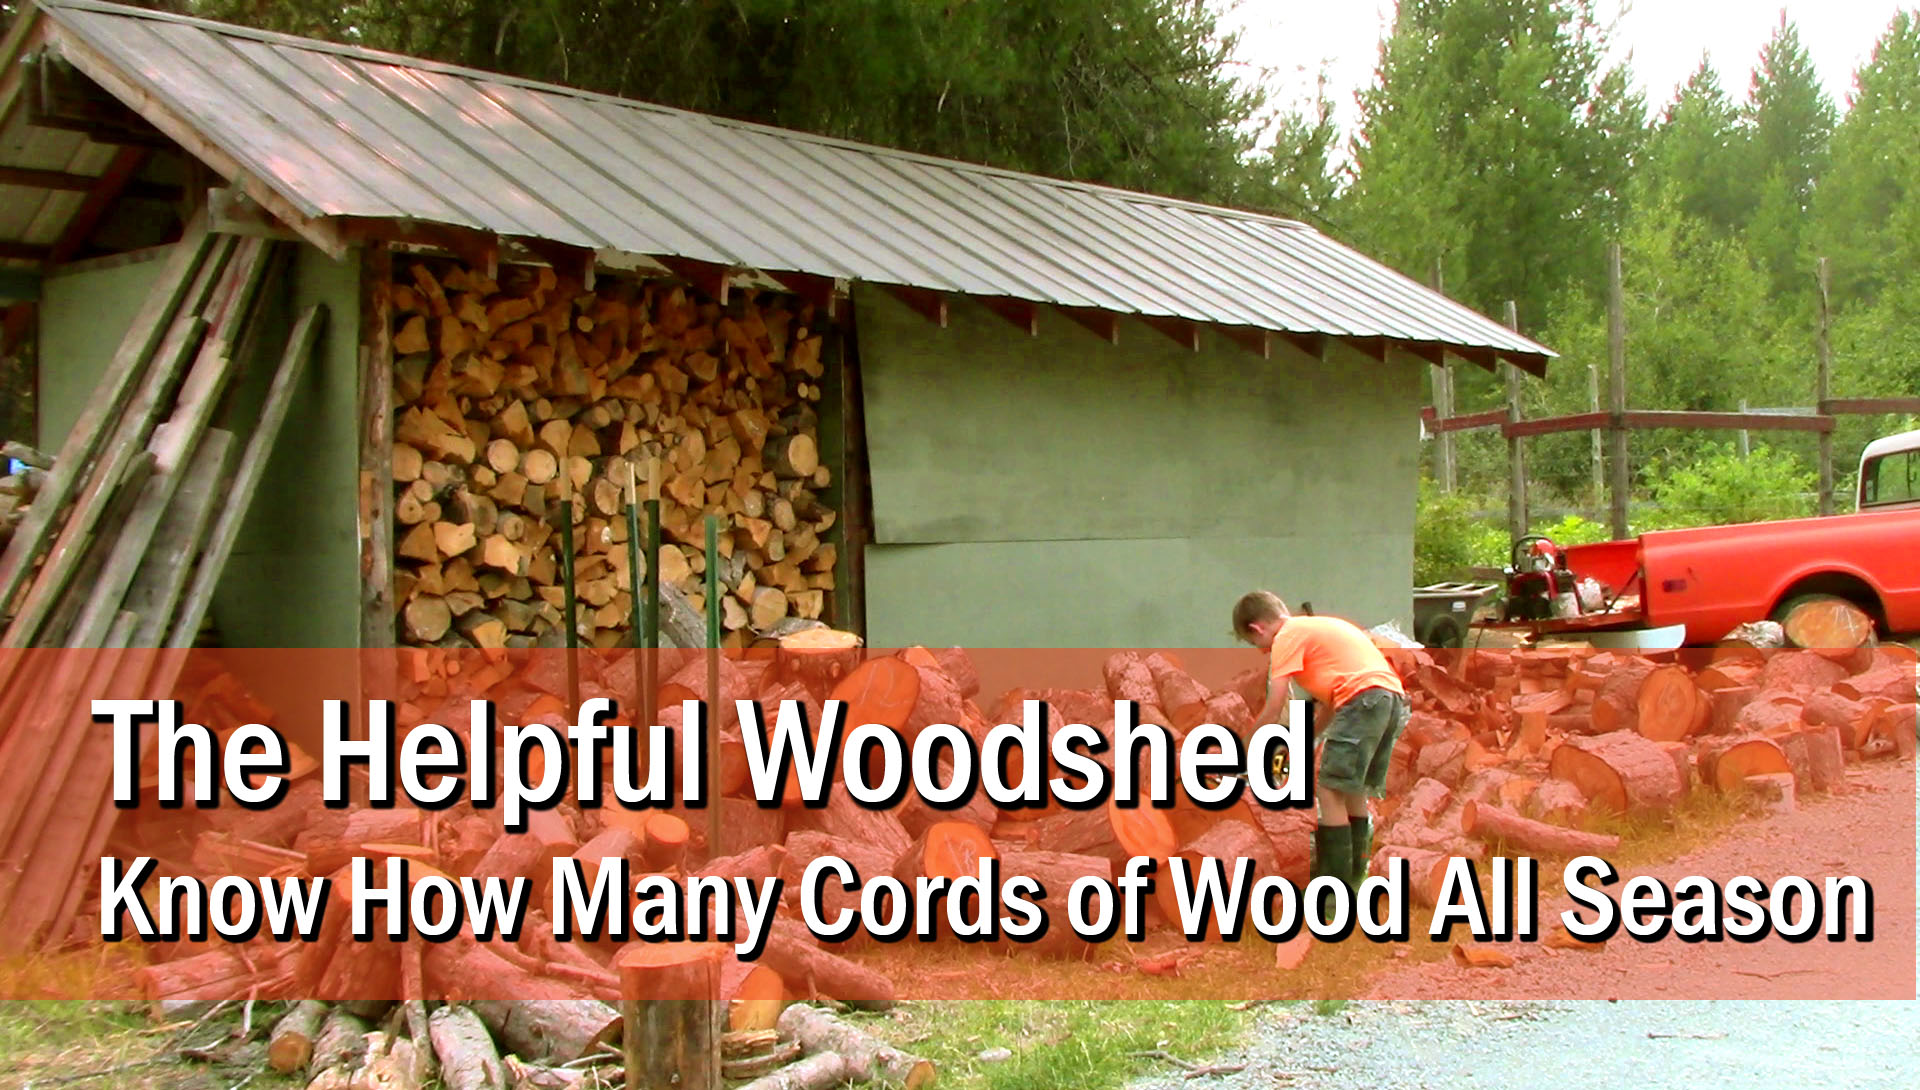 The Helpful Woodshed … know how many cords of wood all season.